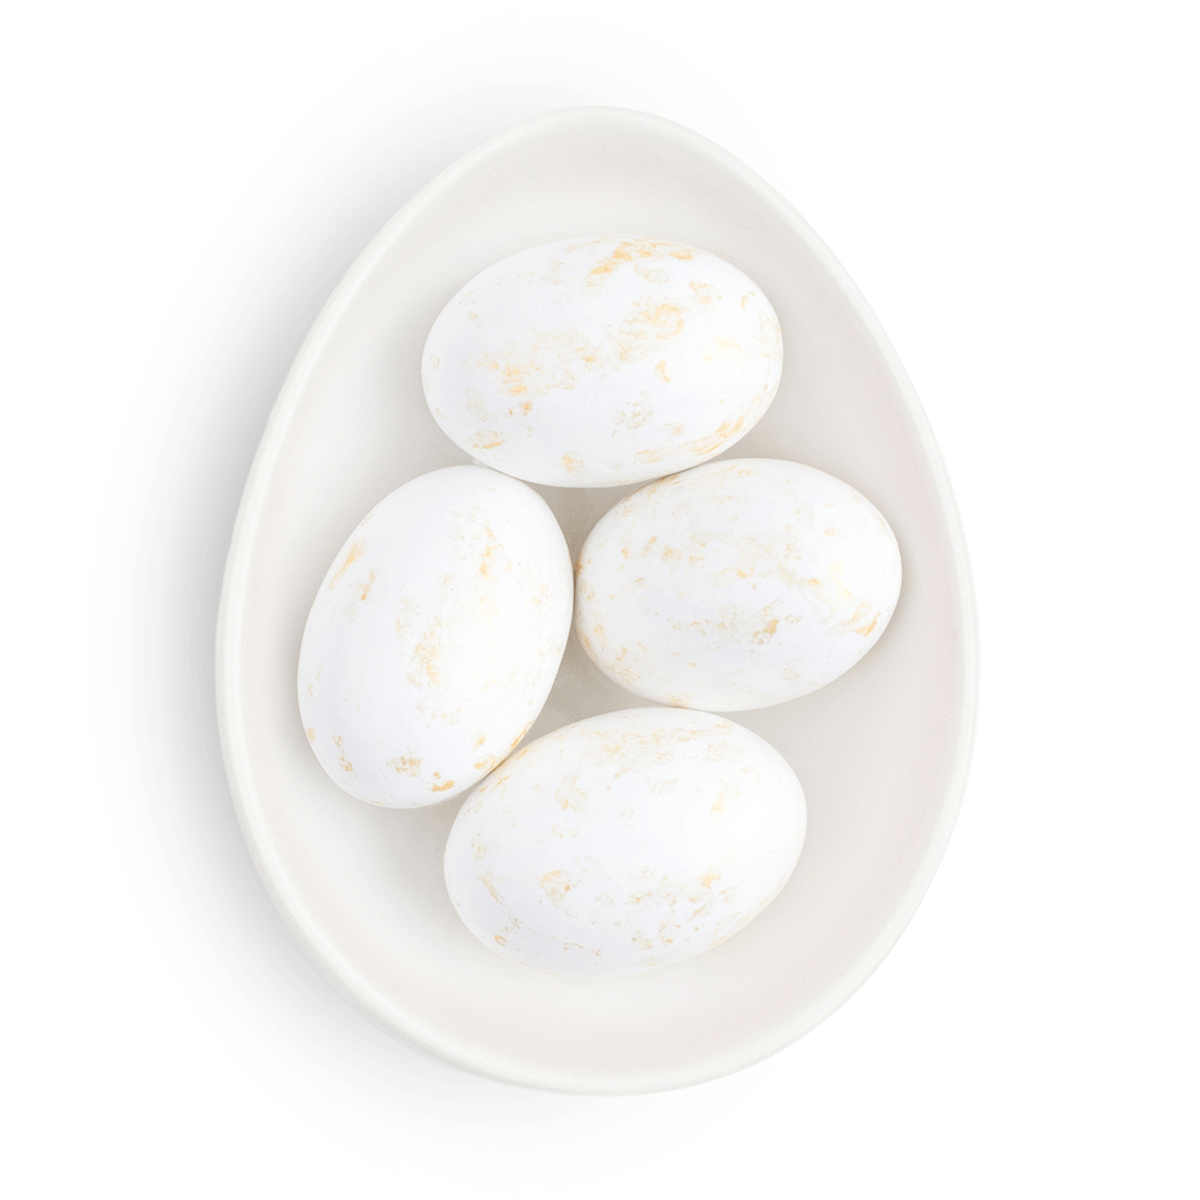 Golden Truffle Eggs - Small Candy Cube